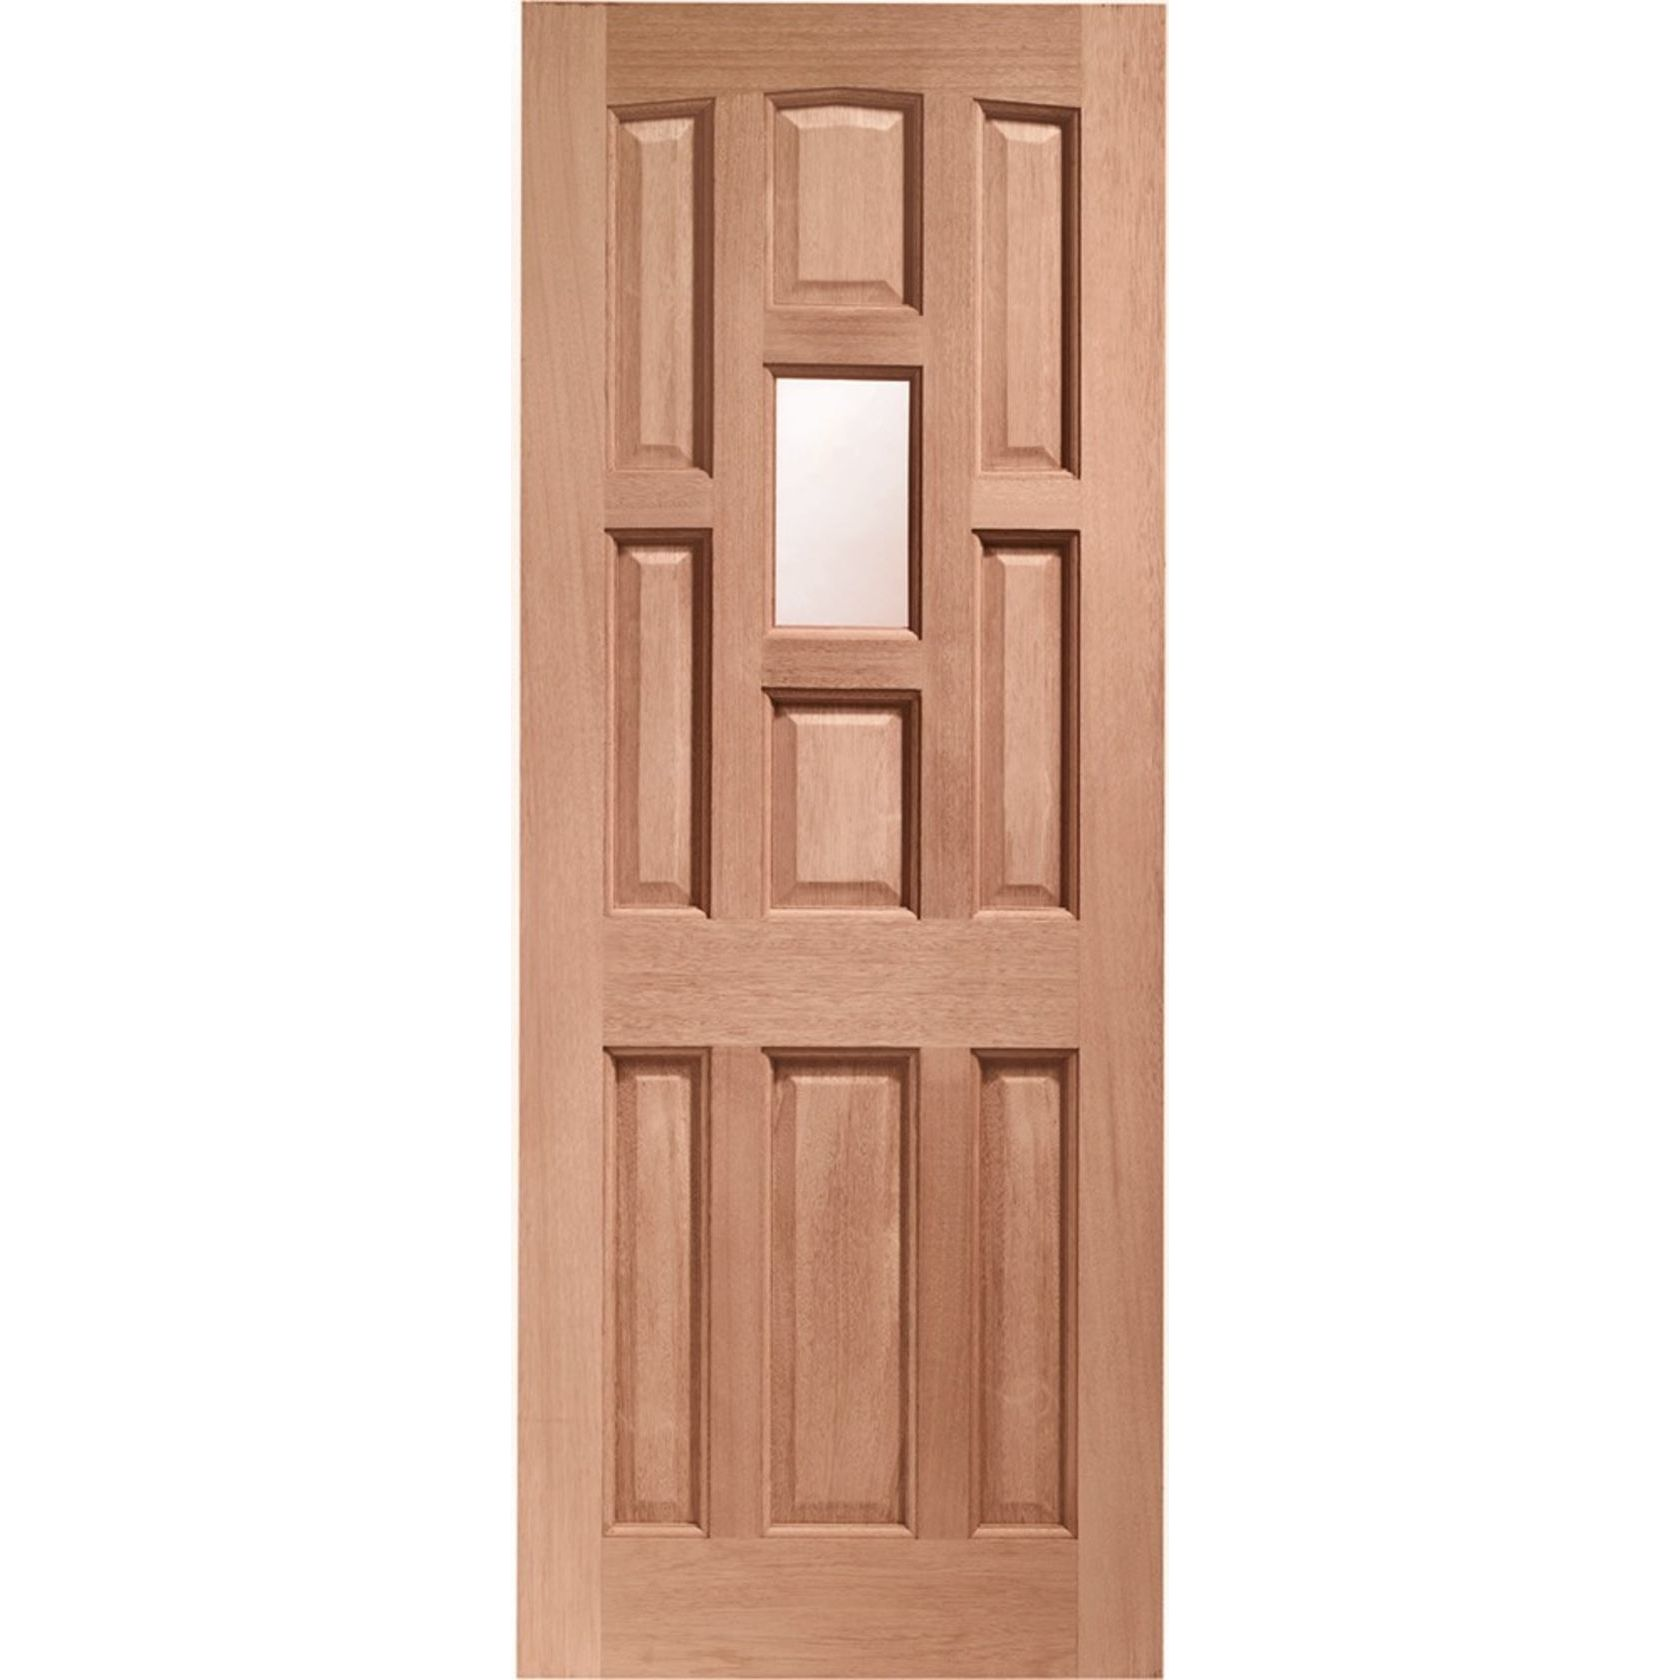 York Glazed Door: 1-light *Obscure Single Glazed* [Hardwood] 44mm Dowel External Door - XL Doors